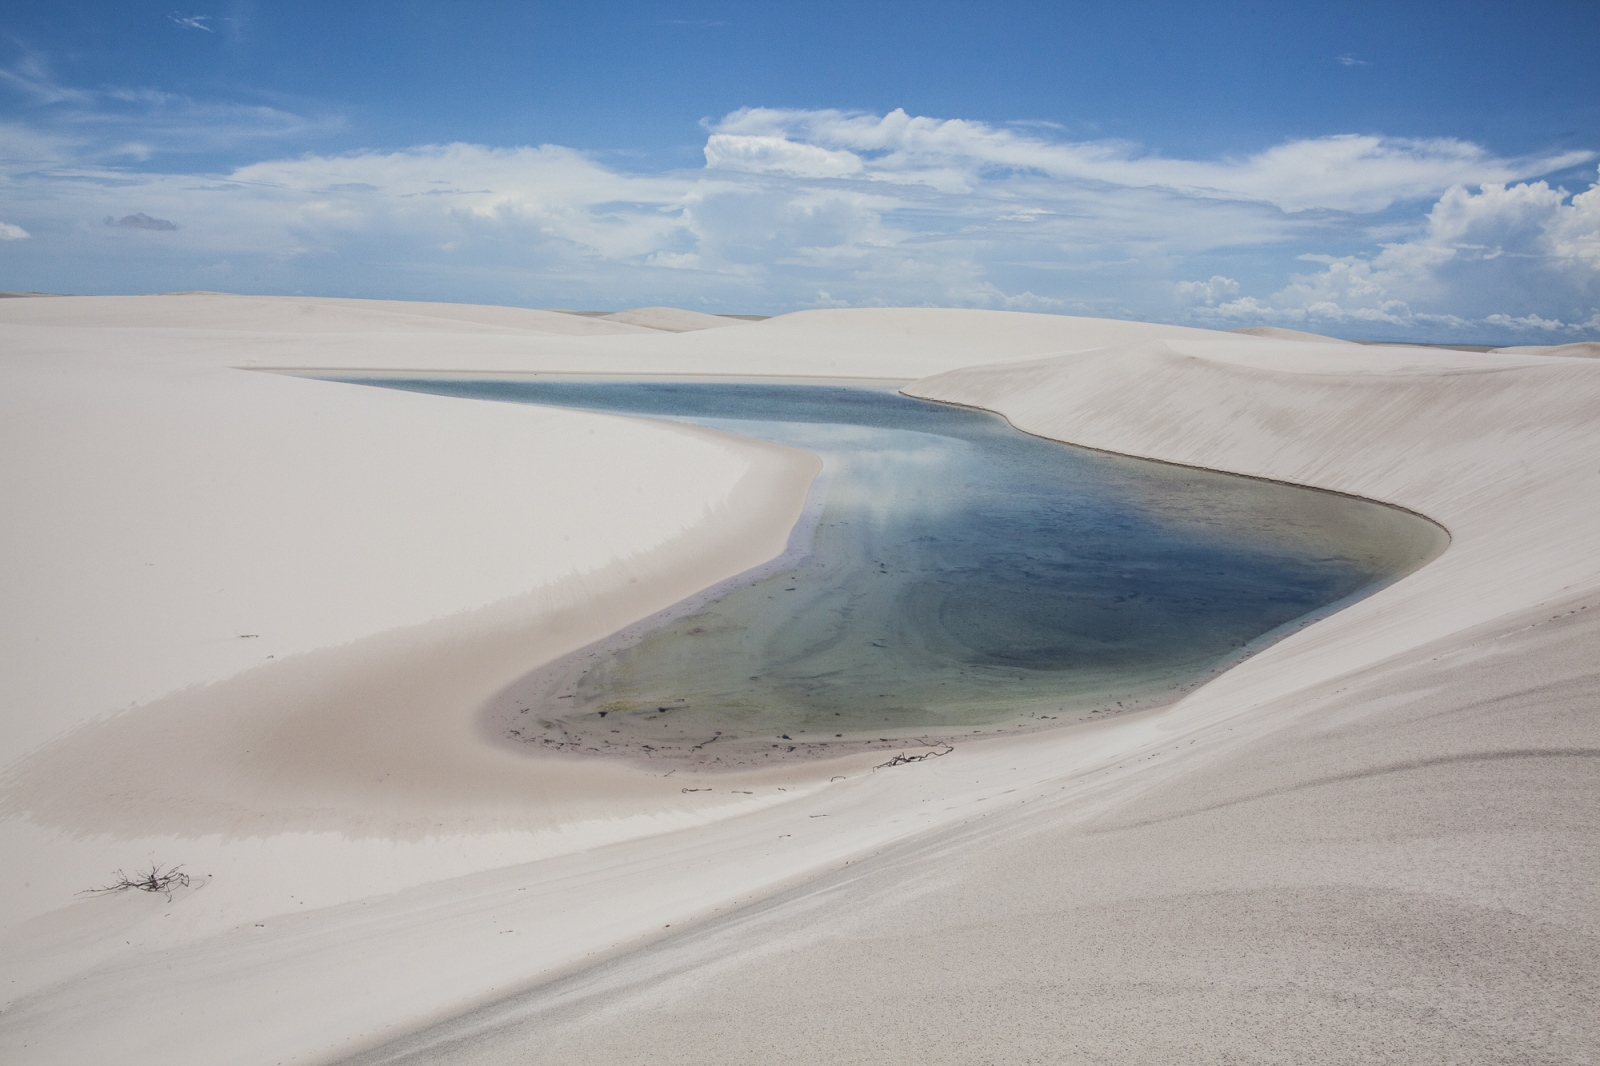 One of the Lençois do Maranhão lagoons during the Winter season. The sand filters the water from the rain and creates clear water lagoons. Lençois do Maranhão, a 155 thousand hectares National Park in the state of Maranhão, Brazil.